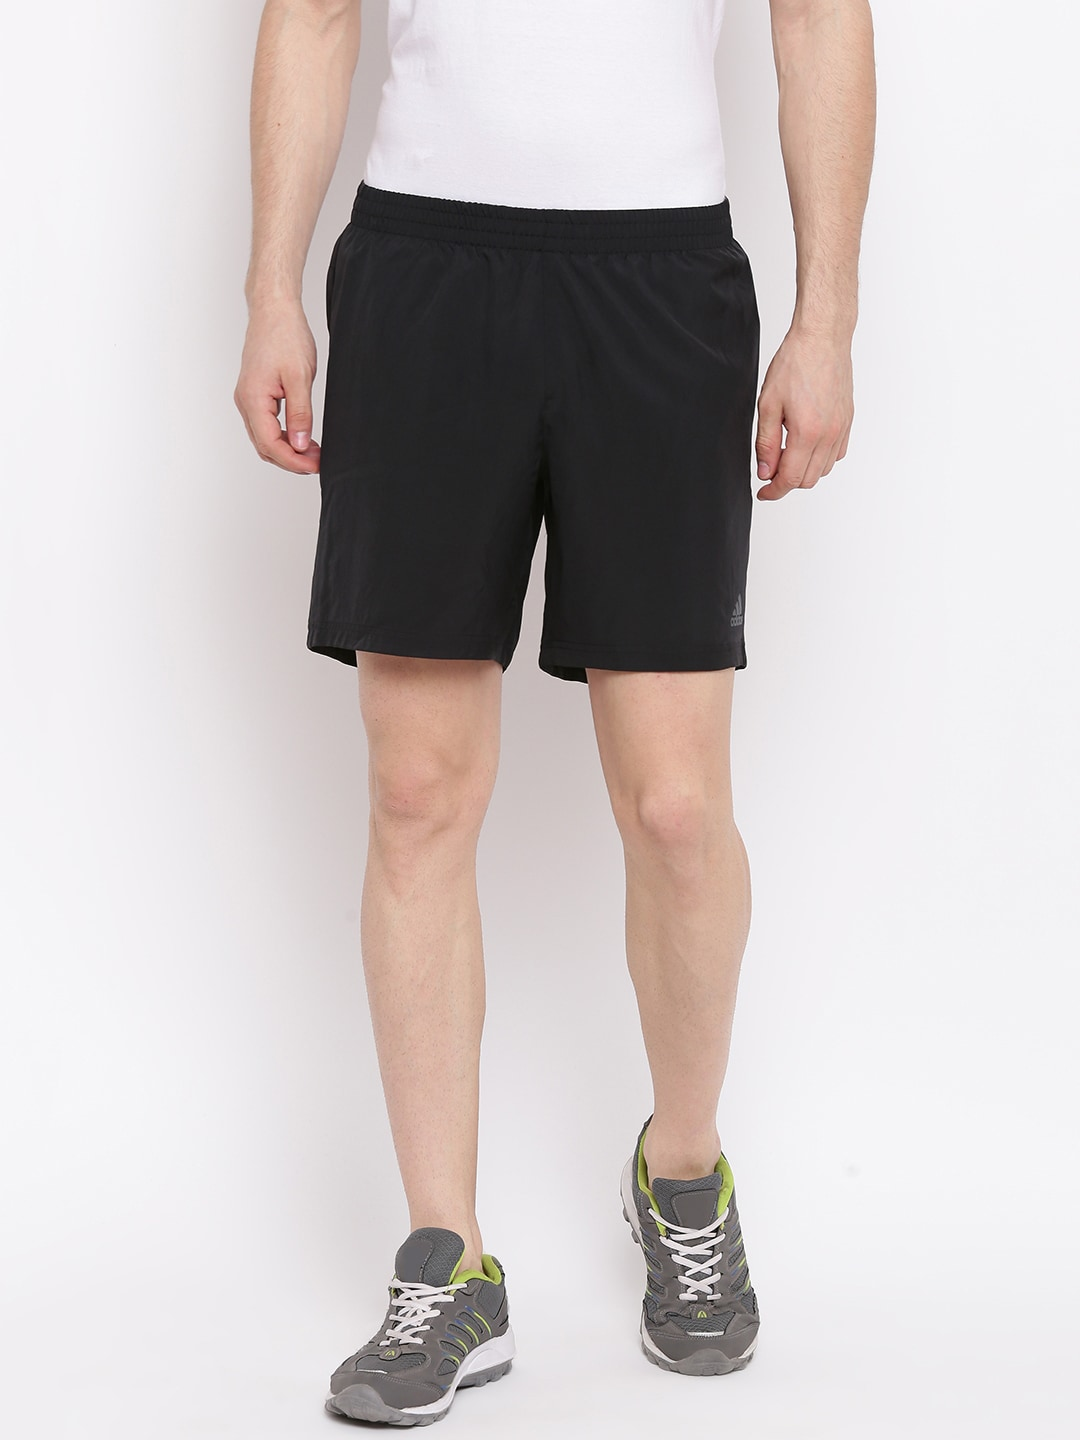 Shorts Sports Black It Solid Run Men Adidas shrBxtQCd